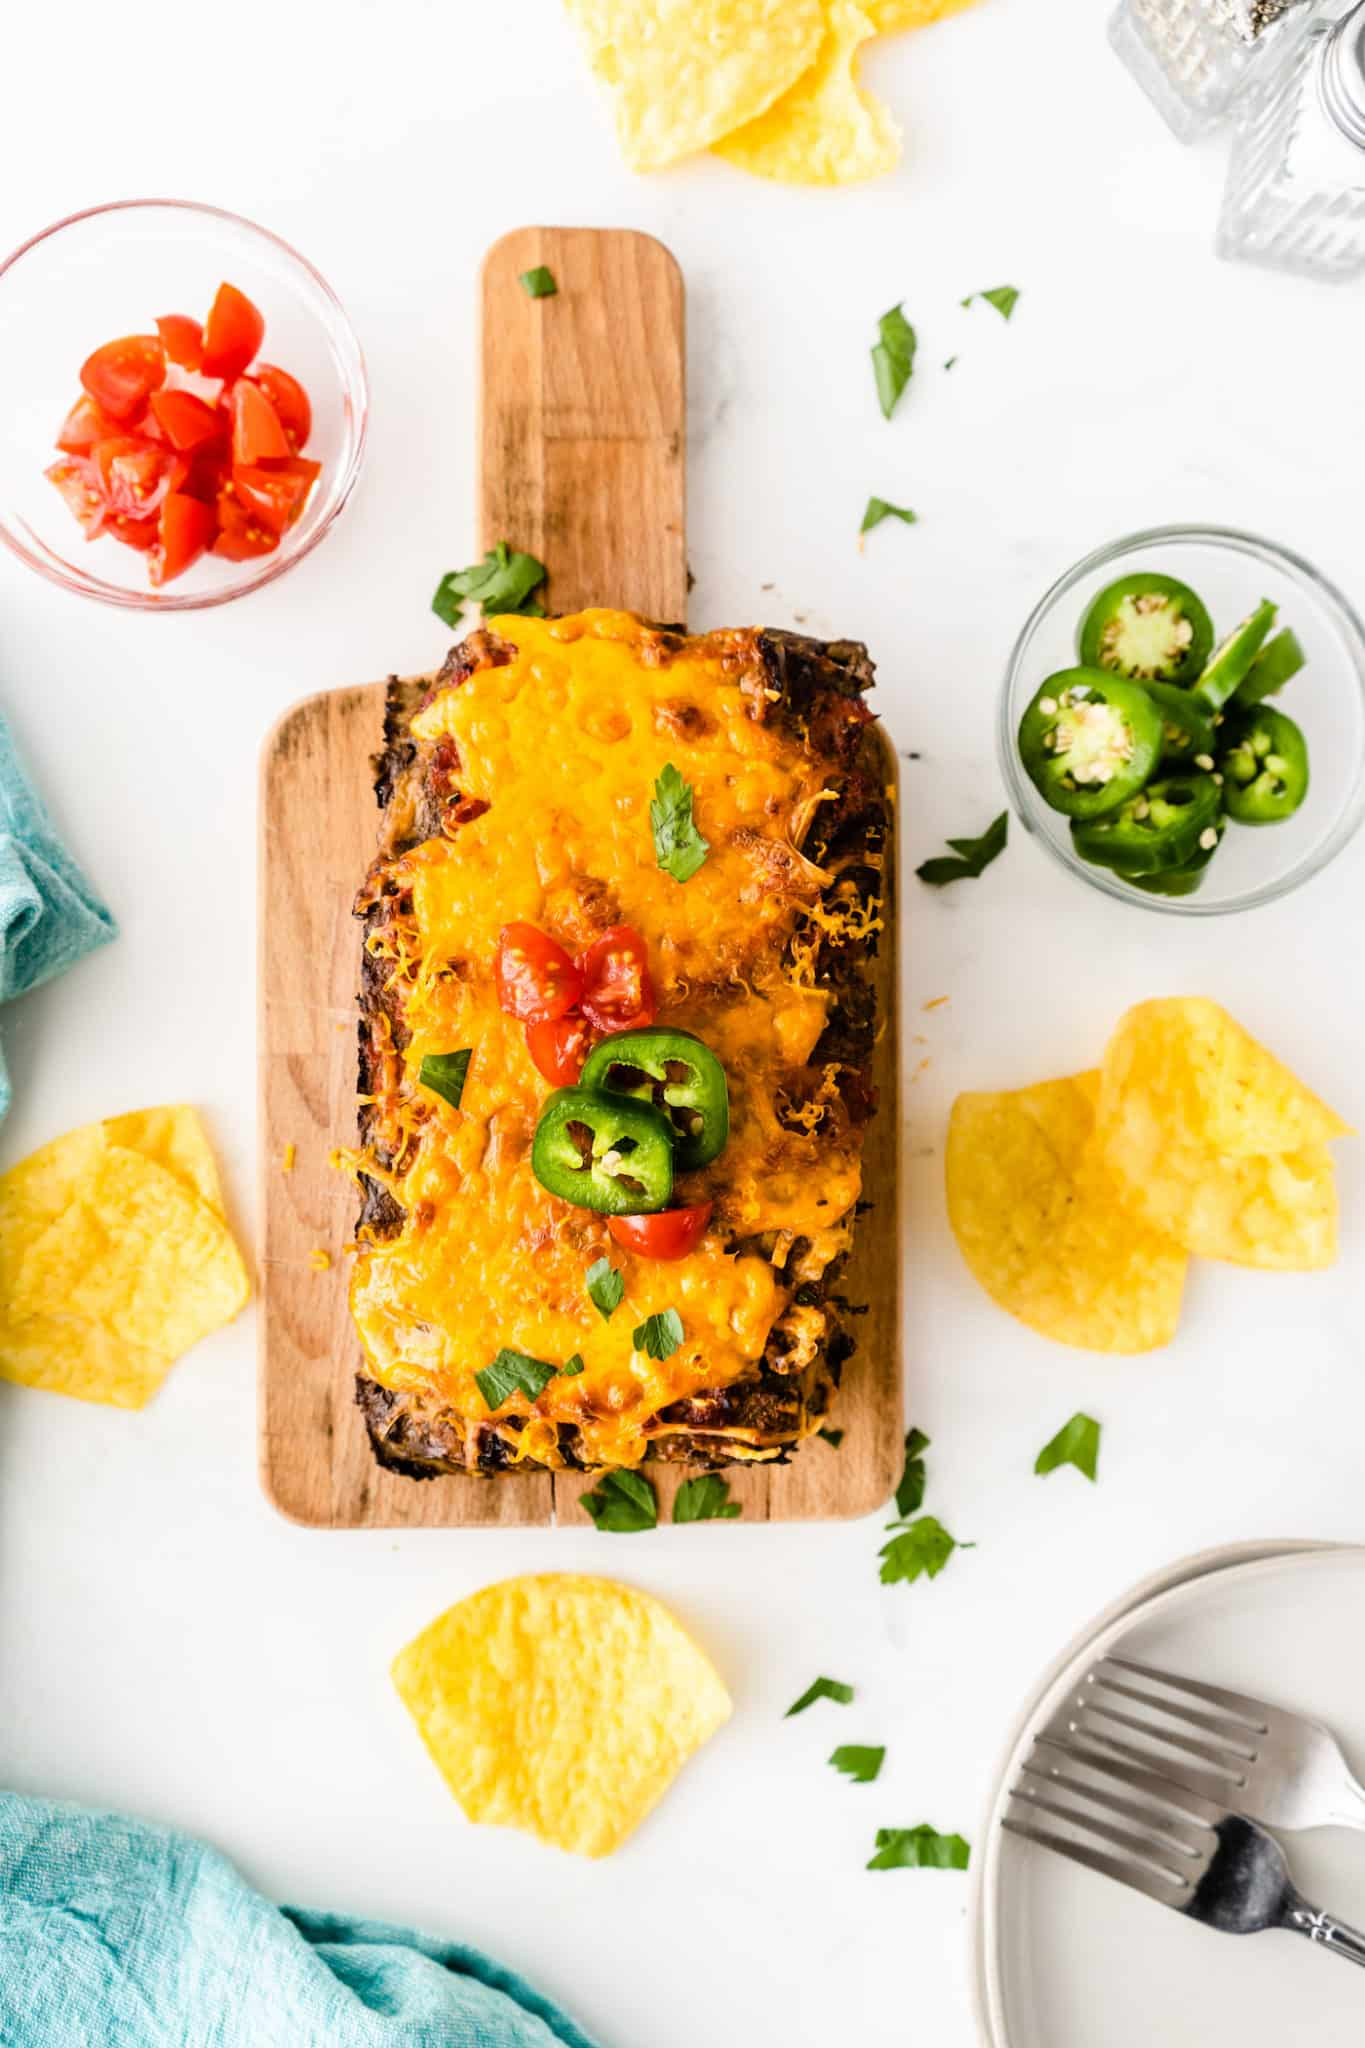 cooked taco meatloaf served on a wooden cutting board with extra toppings